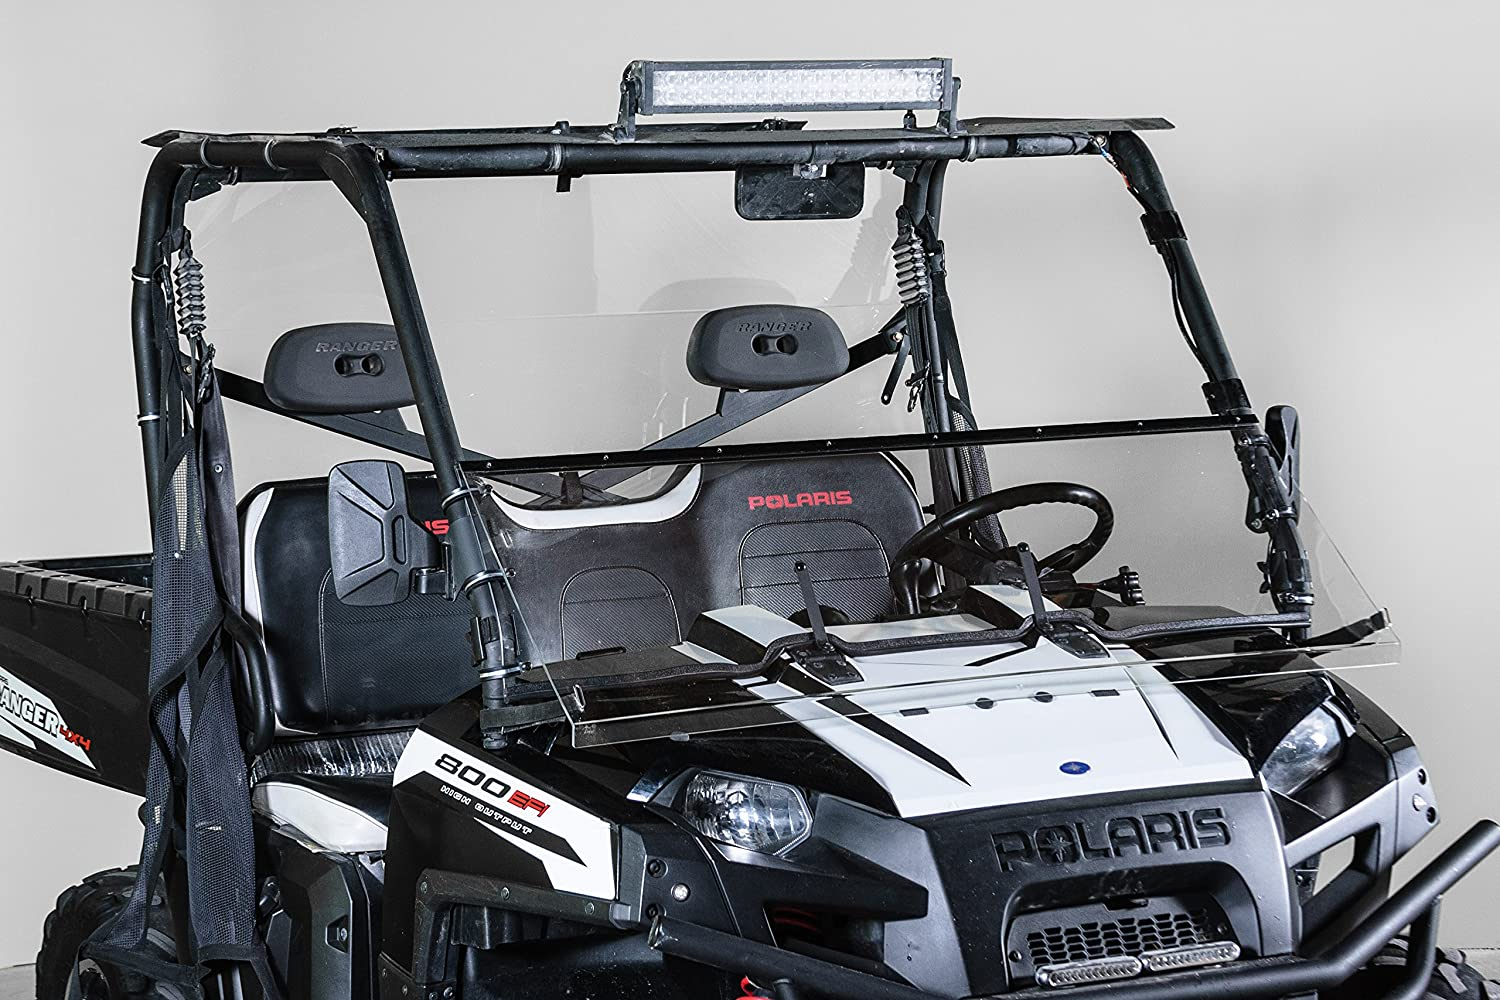 2009 XP, 2010-2014 Best of both worlds Half when you want and Full when you need Made in America FULL-TILT WINDSHIELD Does not fit 900 OR Mid Size POLARIS RANGER FULL SIZE